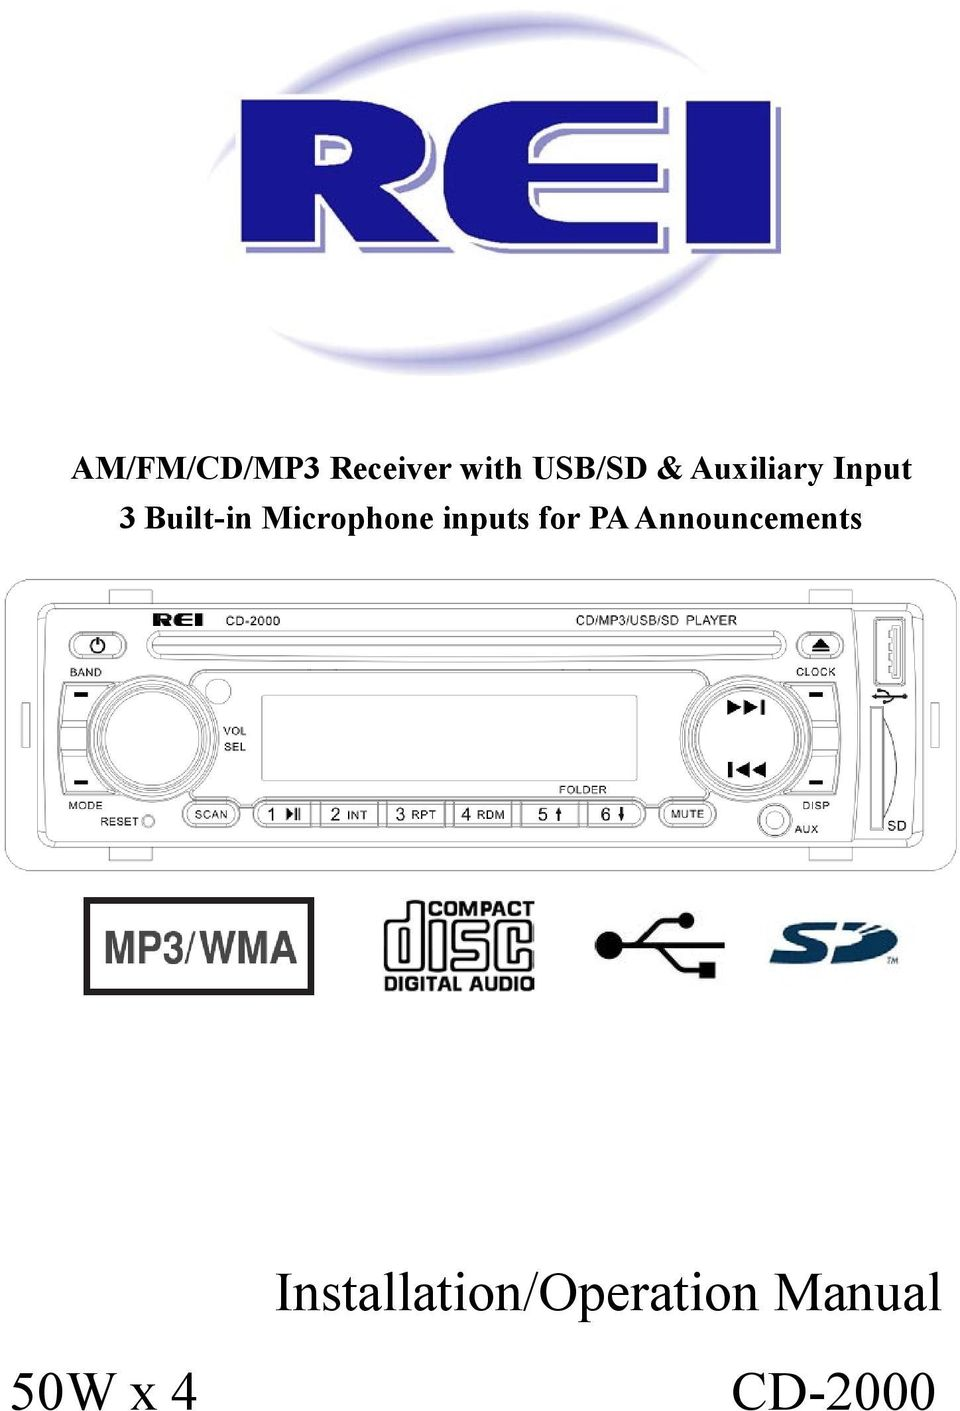 Am Fm Cd Mp3 Receiver With Usb Sd A U Xiliary Input 3 Built In Iphone Tools Installation Instructions Wire Diagrams Stereo Inputs For P Announcements